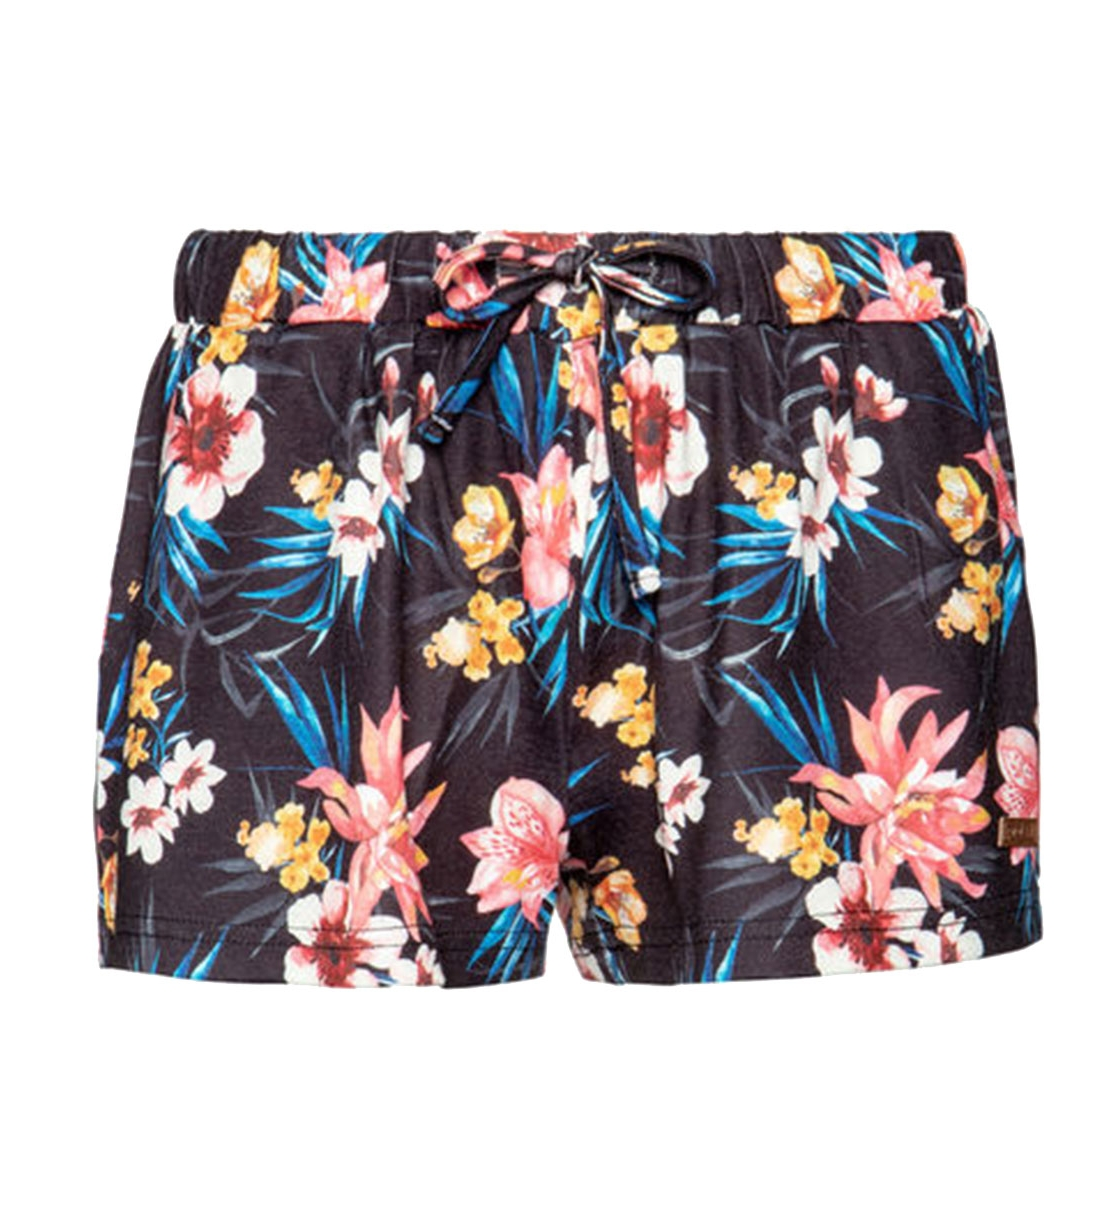 Protest Παιδικό Αθλητικό Σορτς Ss21 Lacy Jr Shorts S2912301